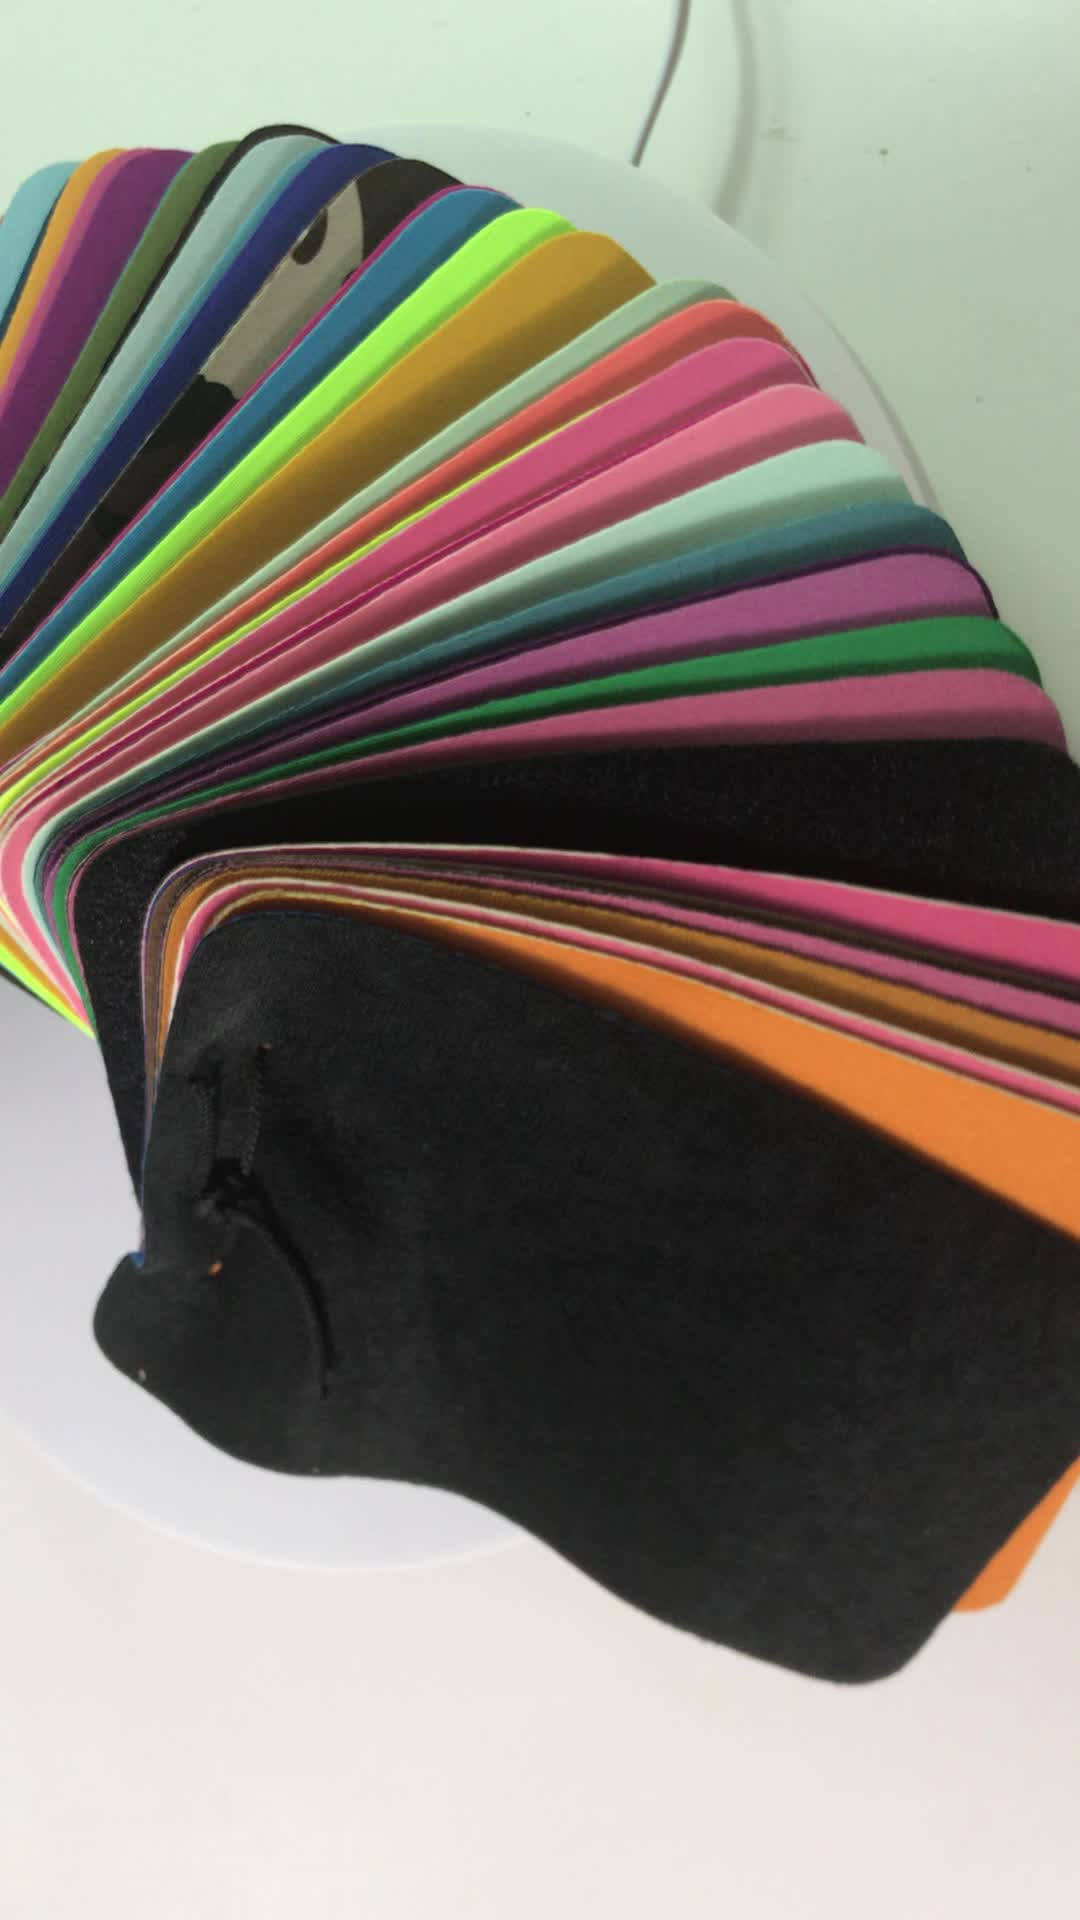 Wetsuit Neoprene Fabric Sheet Neoprene Material Rolls Foam Rubber